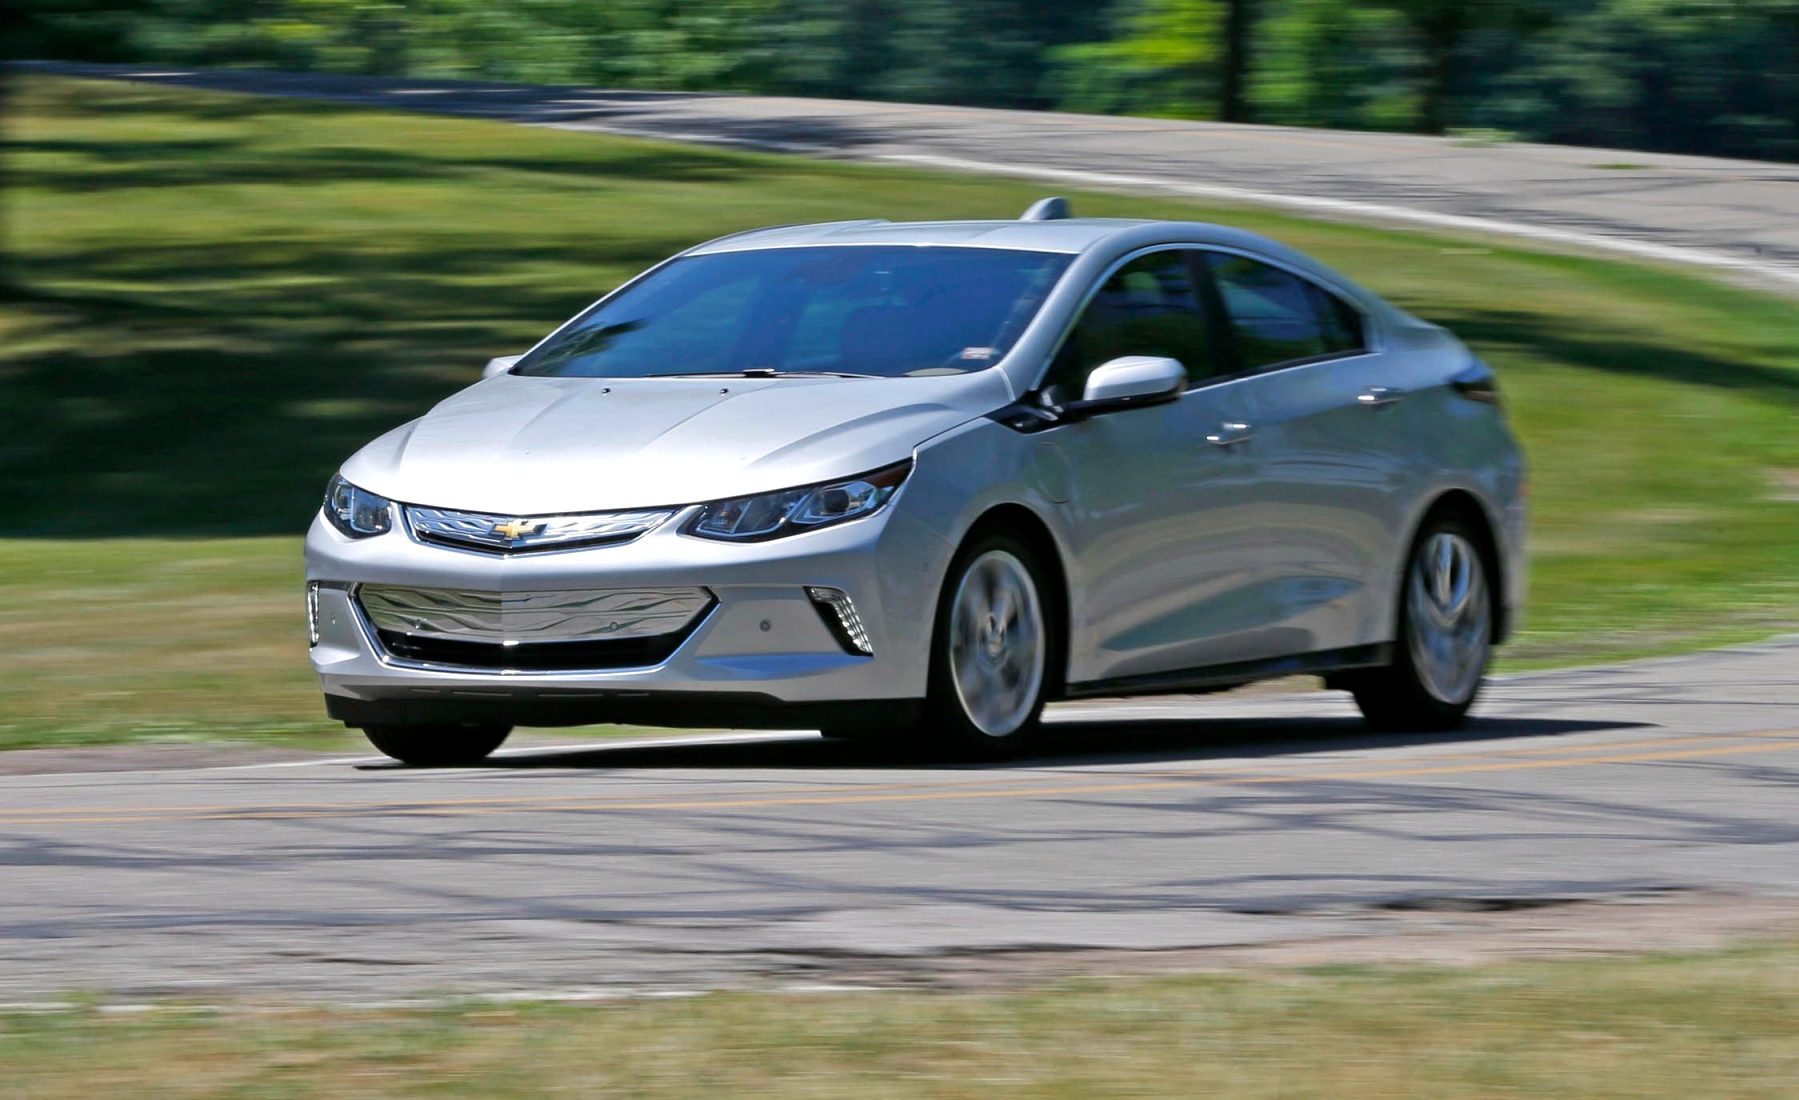 2021 chevrolet volt price Price and Release date